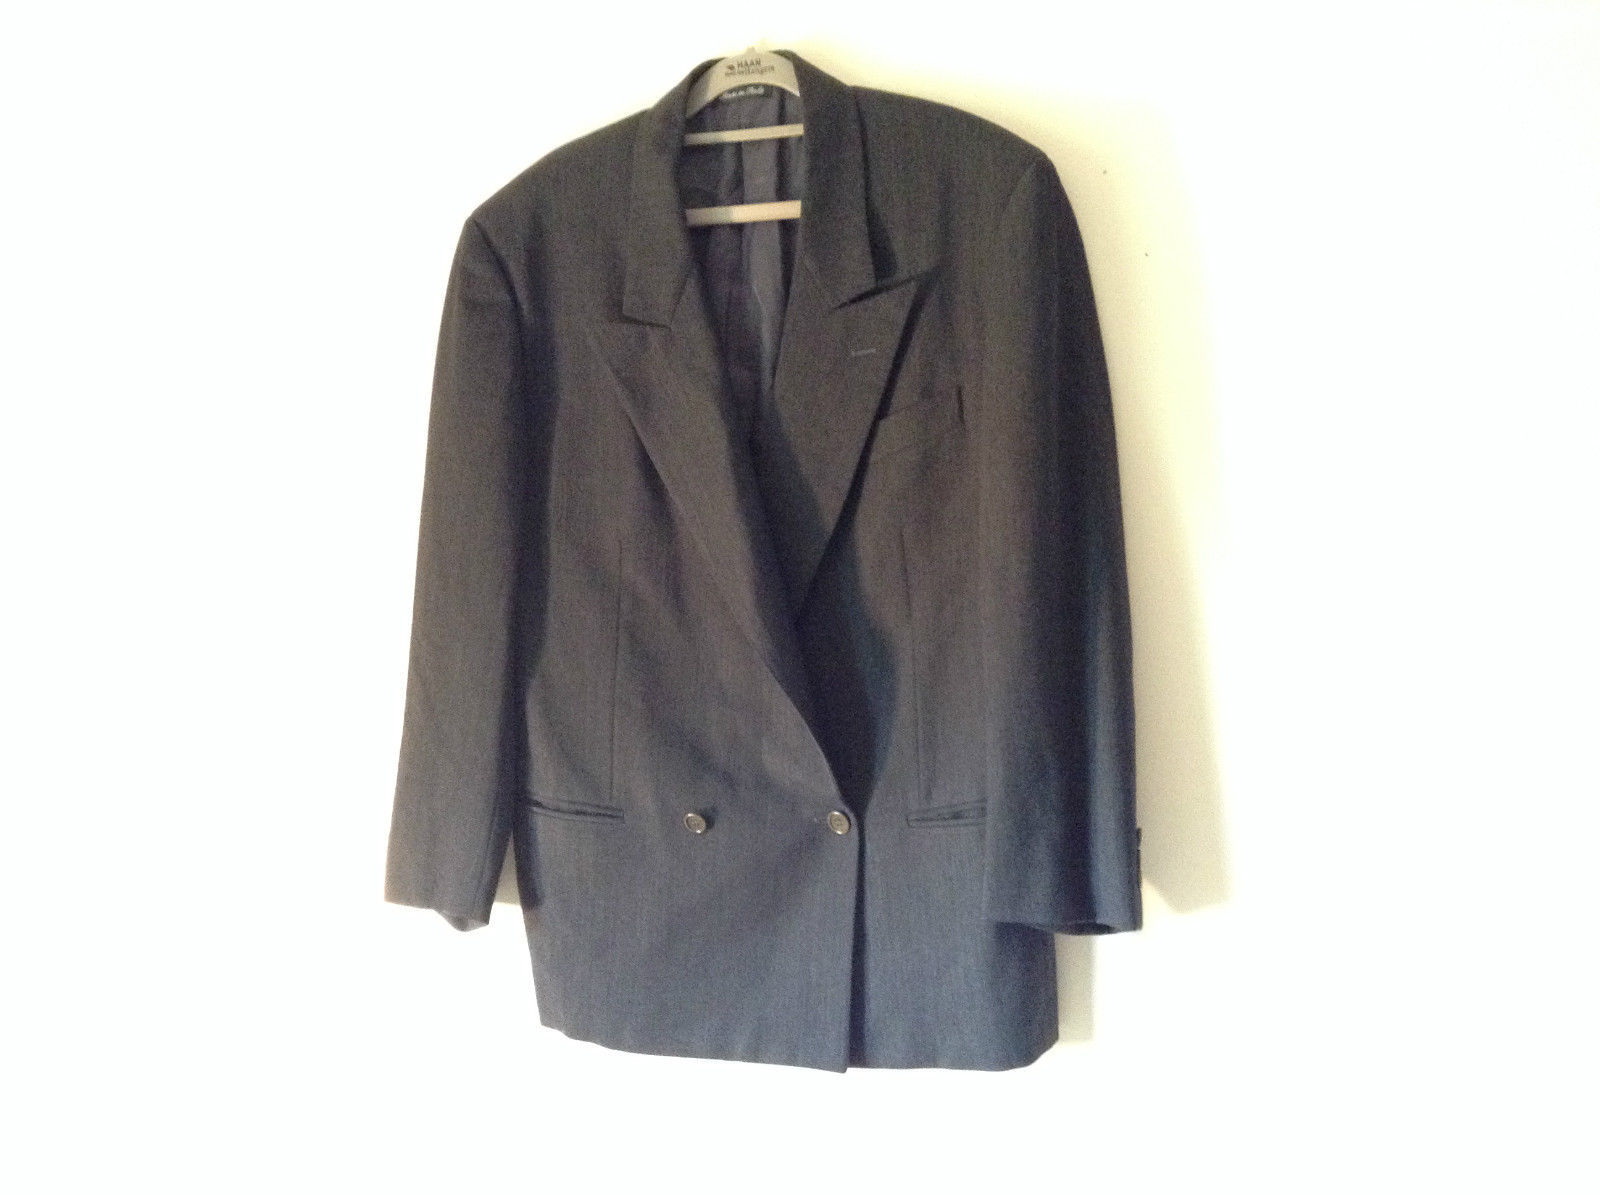 Verri Uomo Italian Suit Jacket Very Dark Gray 100 Percent Wool Size 50